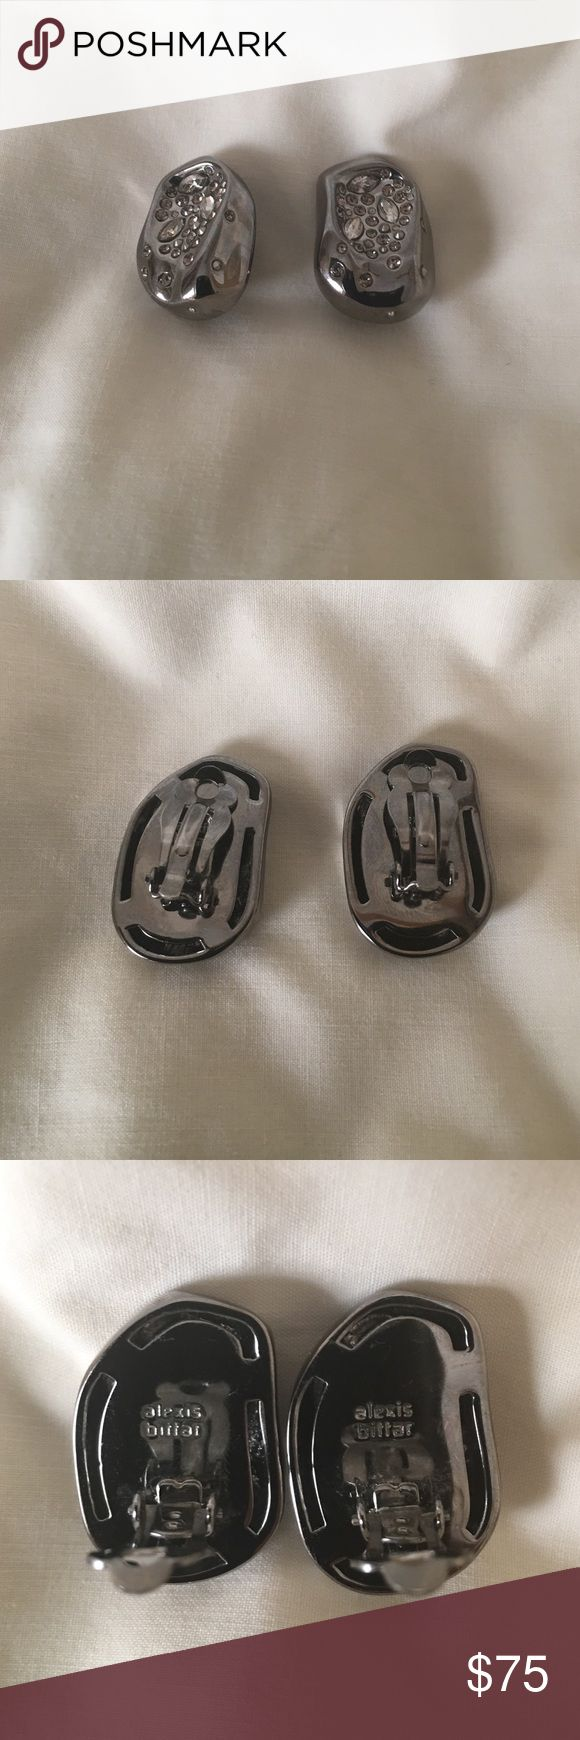 Alexis Bittar Earrings Alexis Bittar Silver/gunmetal clip earrings up for sale. These are perfect for someone who wants a little war sparkle. Alexis Bittar Jewelry Earrings